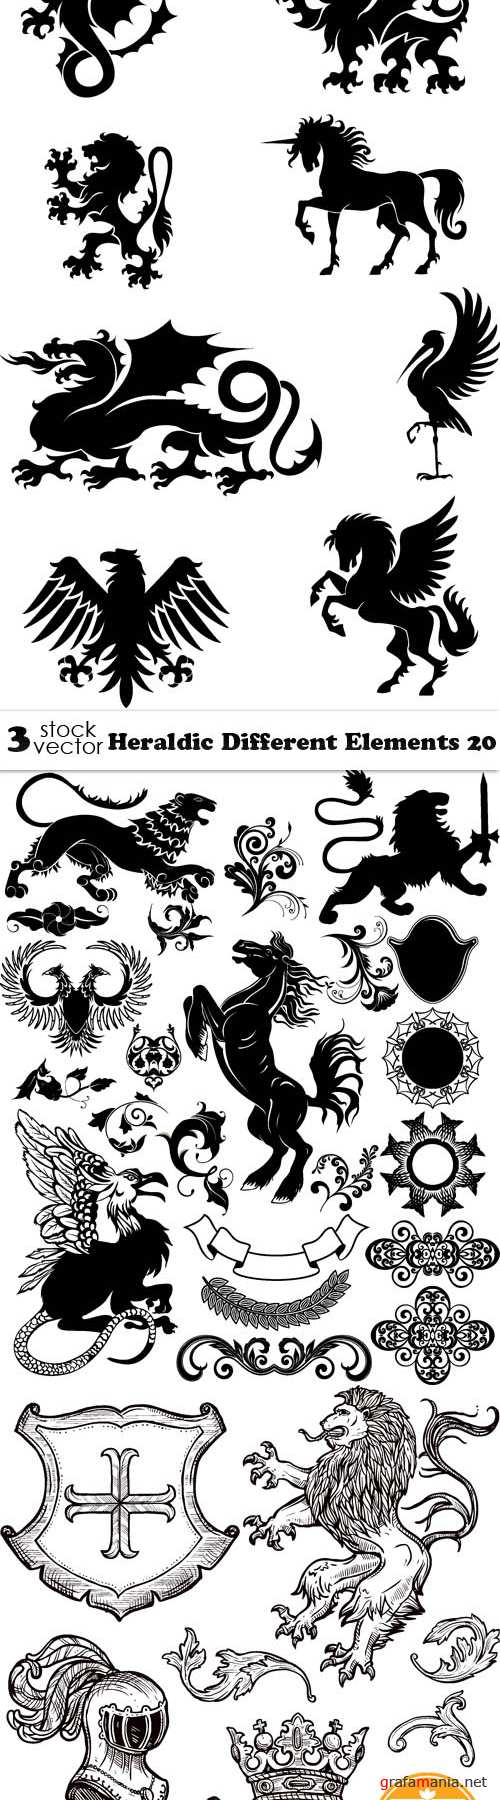 Vectors - Heraldic Different Elements 20